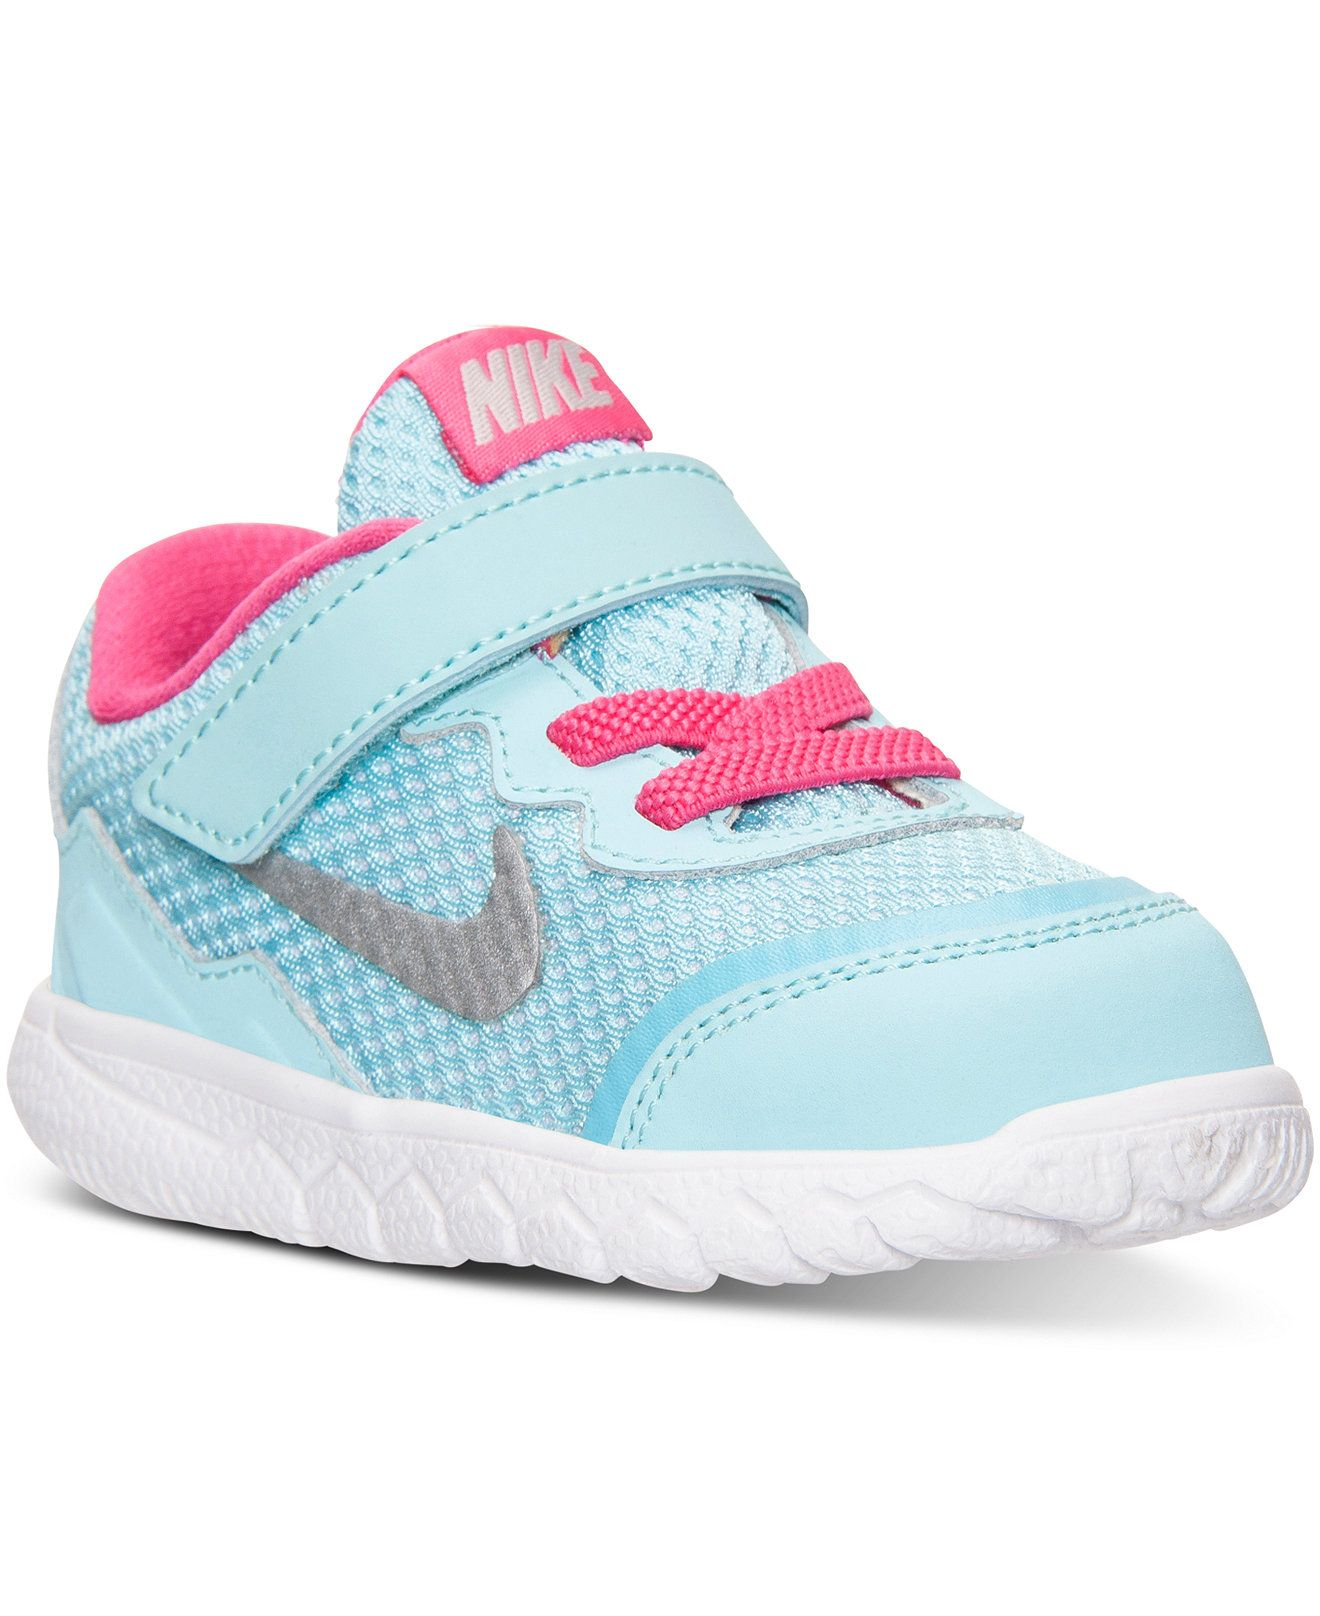 87d53126b976 Nike Toddler Girls  Flex Experience 4 Running Sneakers from Finish Line -  Shoes - Kids   Baby - Macy s